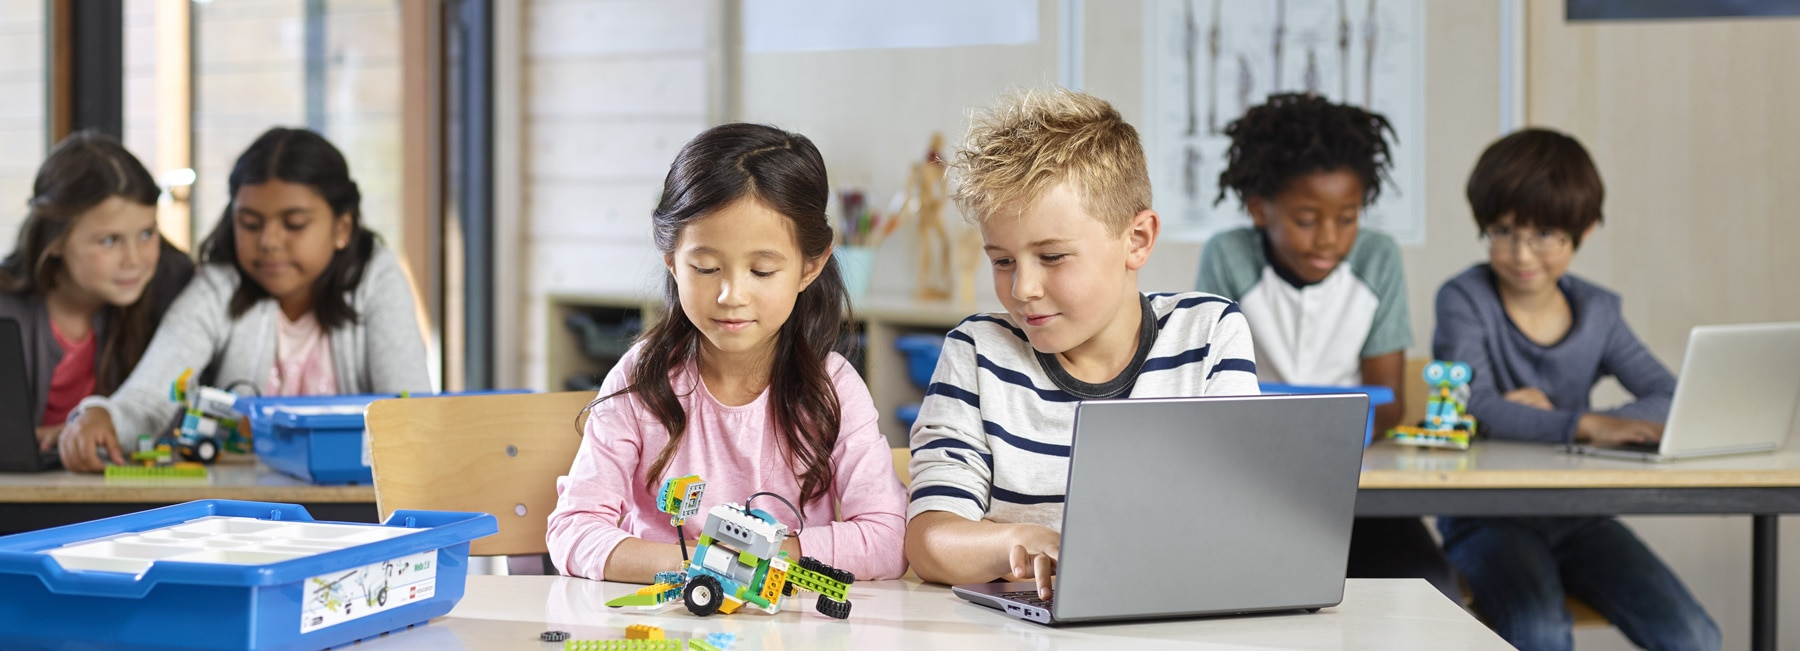 LEGO Education teach STEM through playful learning experiences